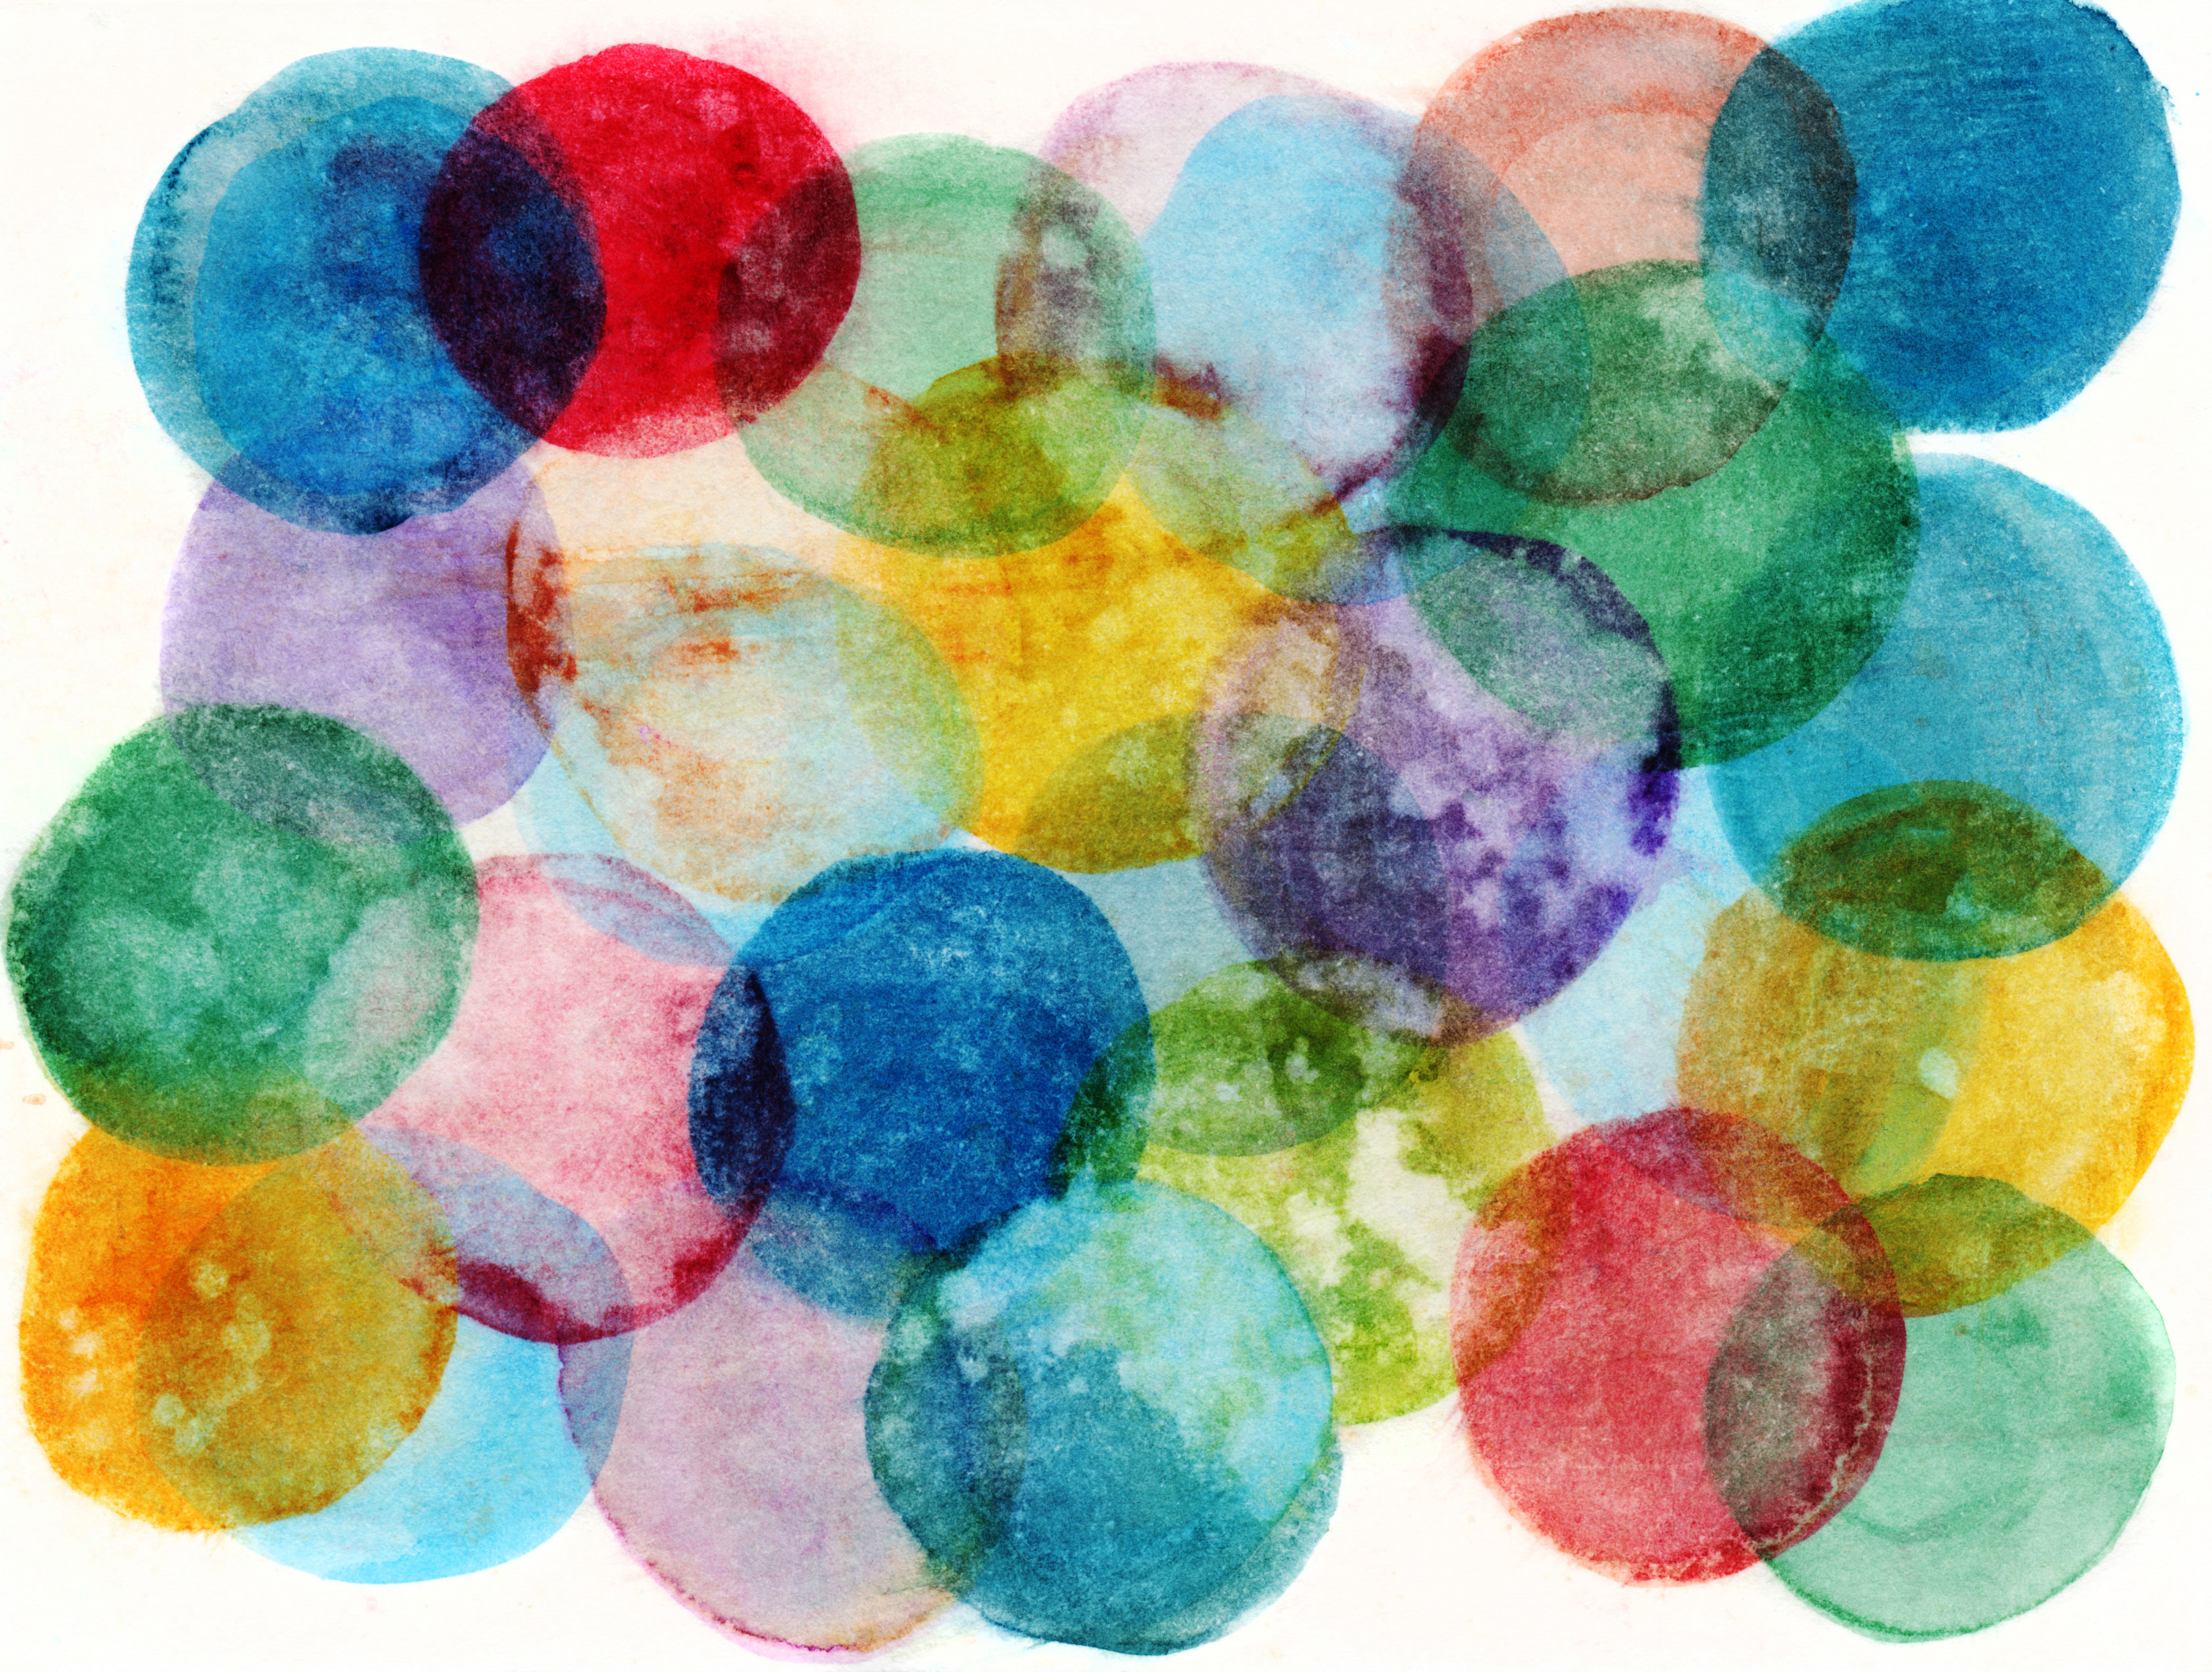 An hand painted background created with watercolors and inks. There are circular formations with texture from splatters of water and paint. There is a distressed texture throughout the painting. There are a variety of many colors.